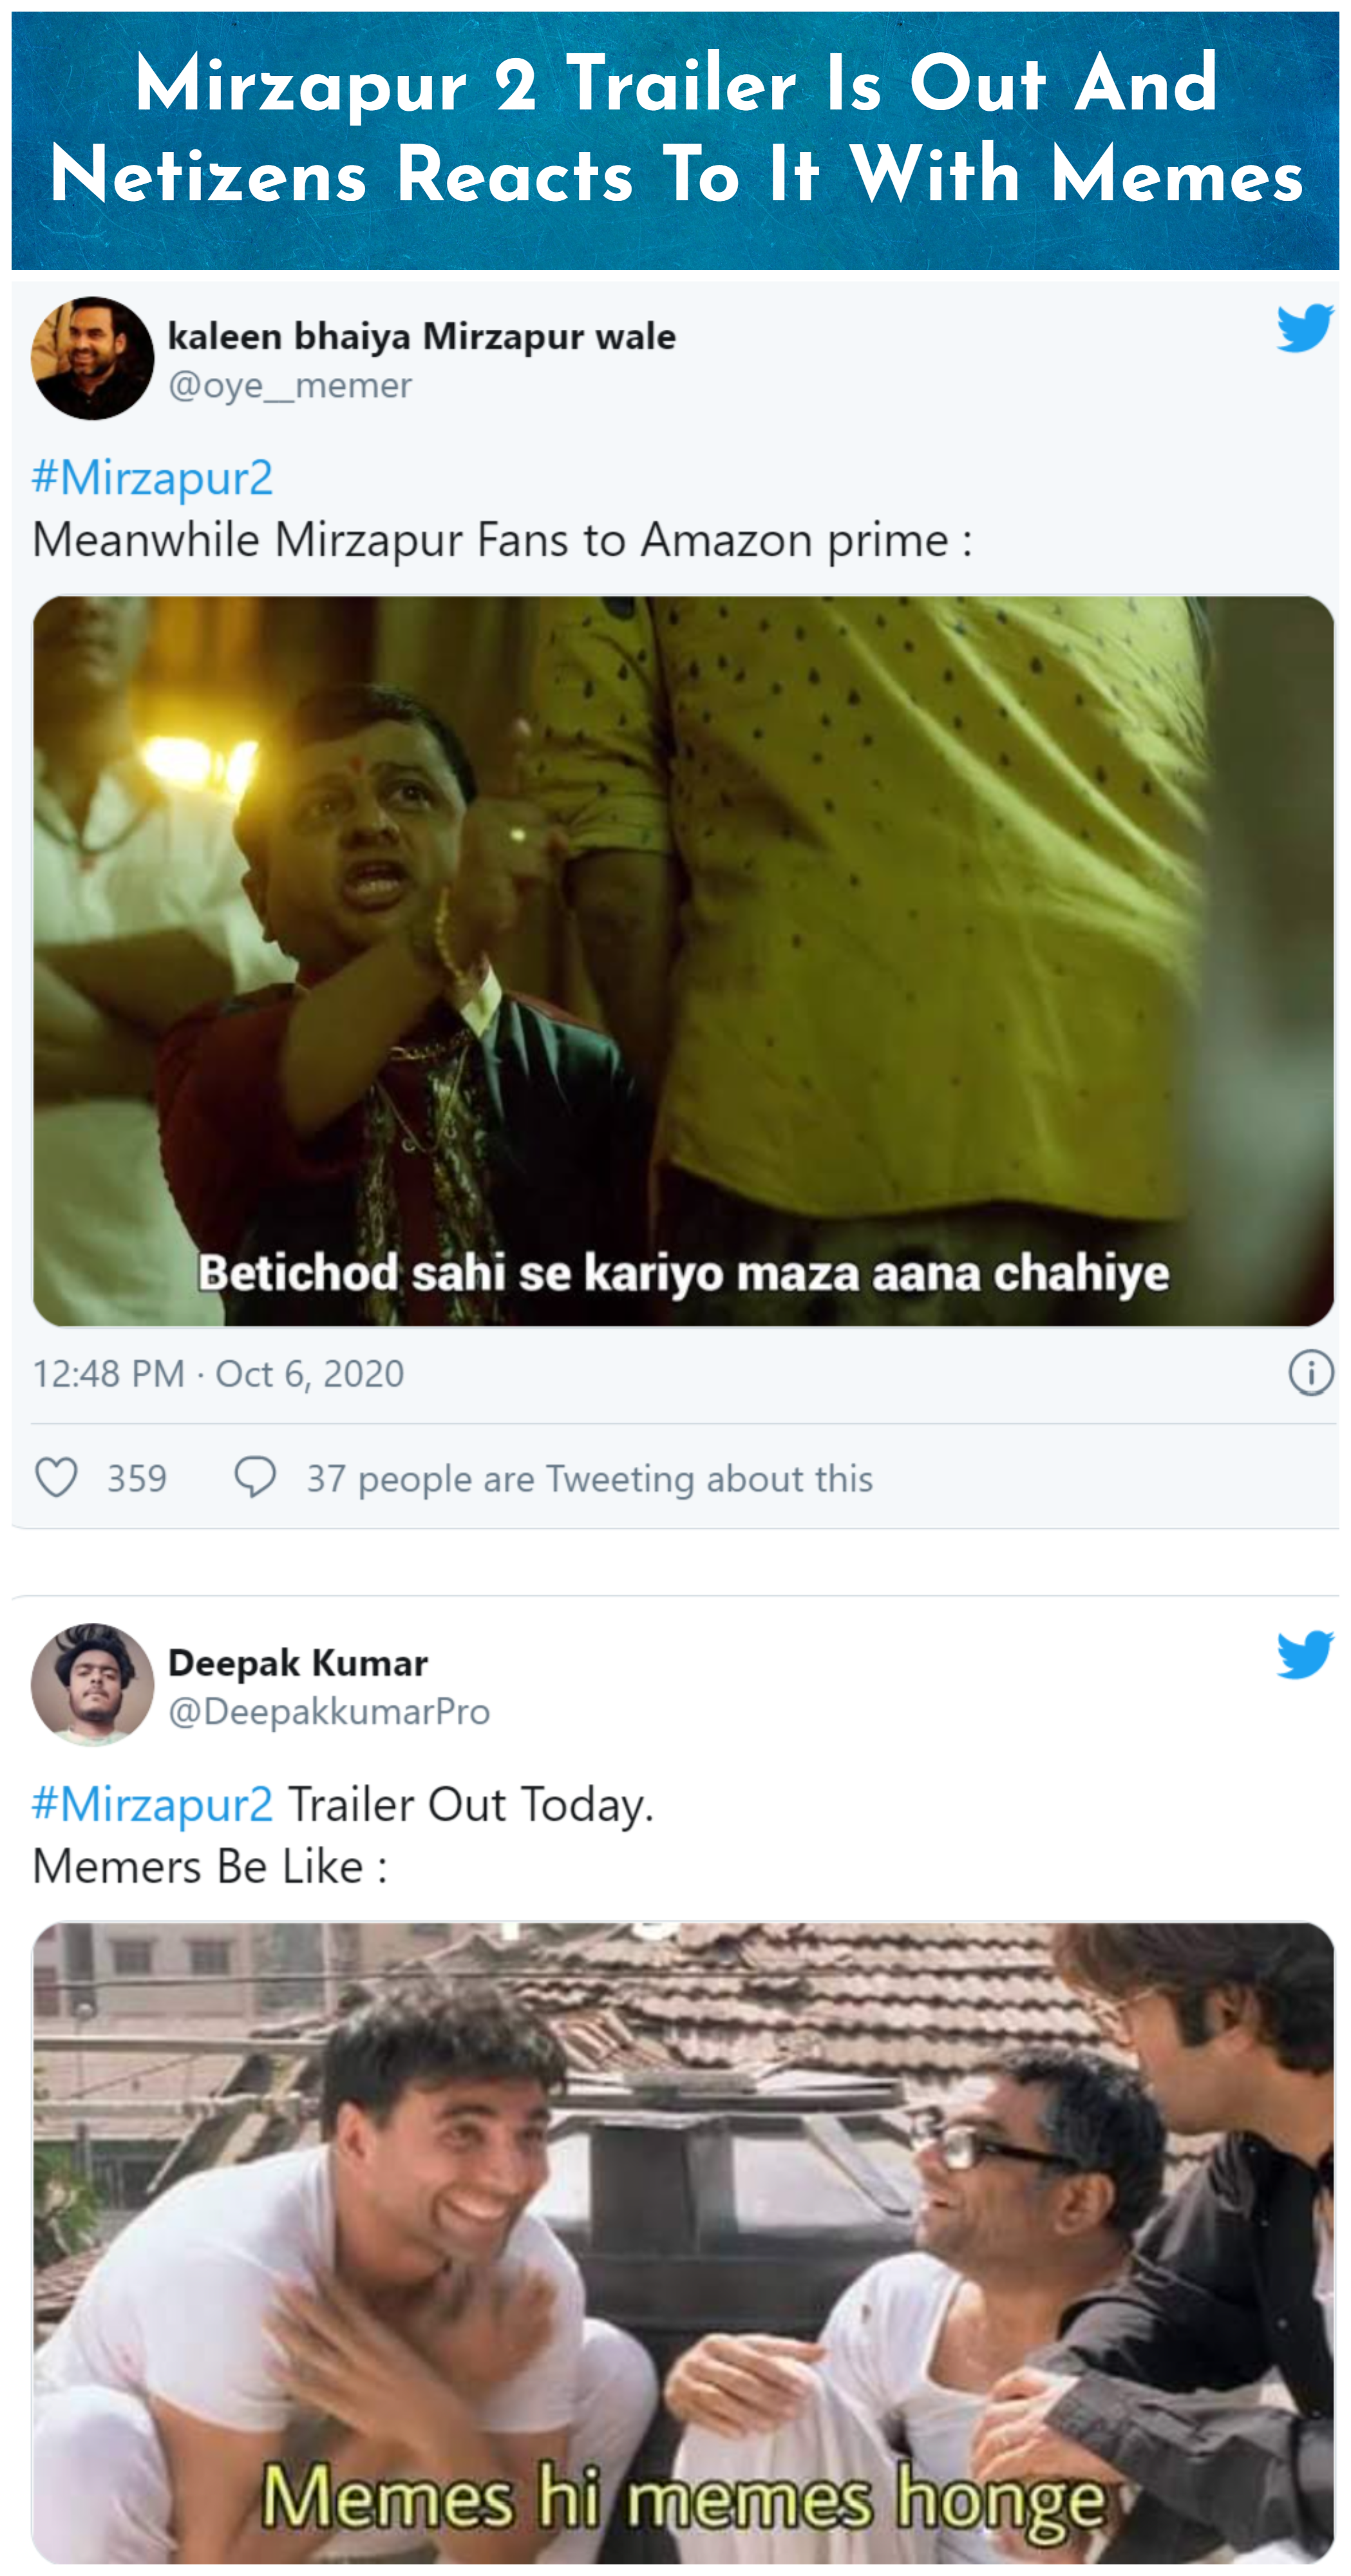 Mirzapur 2 Trailer Is Out And Netizens Reacts To It With Memes Memes Funny Memes Trailer